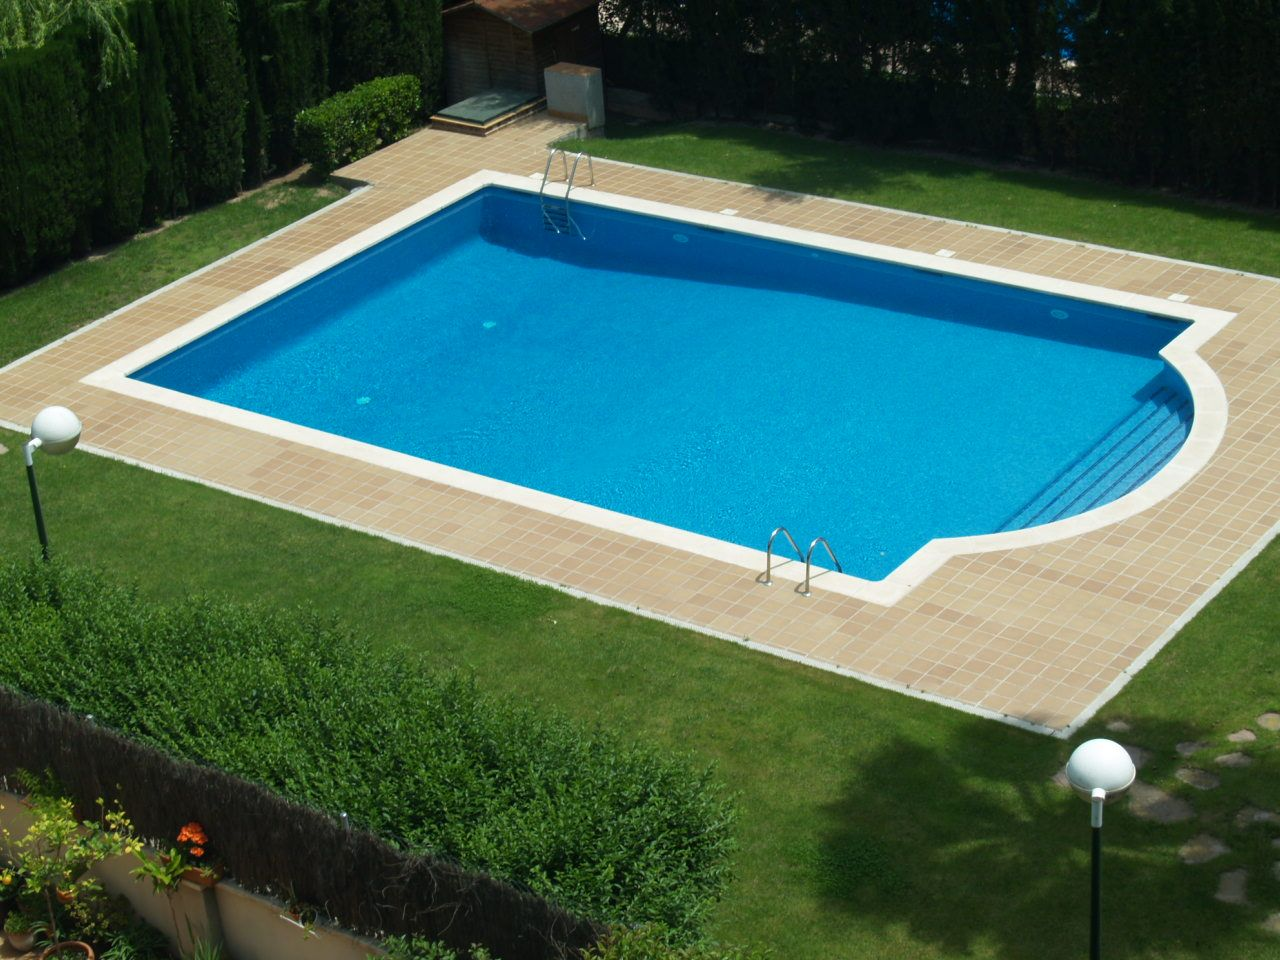 Swimming Pool Rectangular Inground With Small Fountain